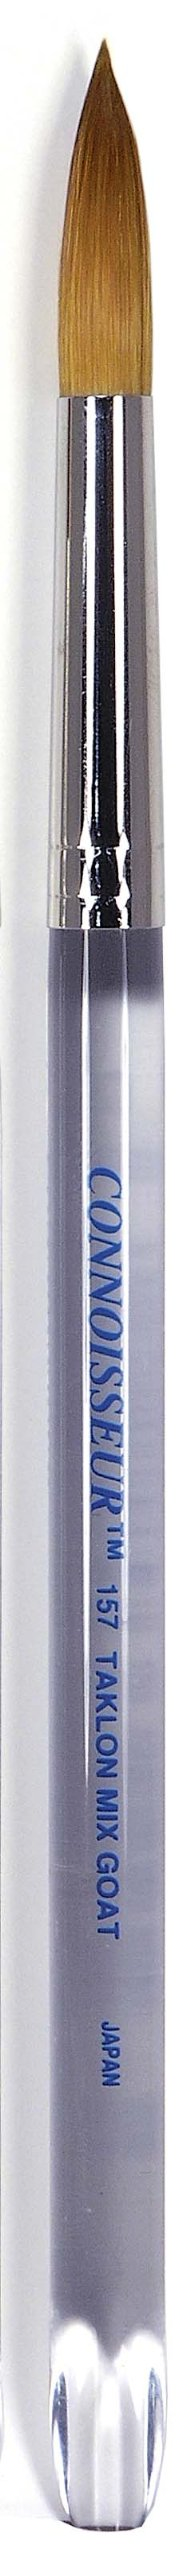 Connoisseur Gold Taklon Colossal Brush, #4 Round